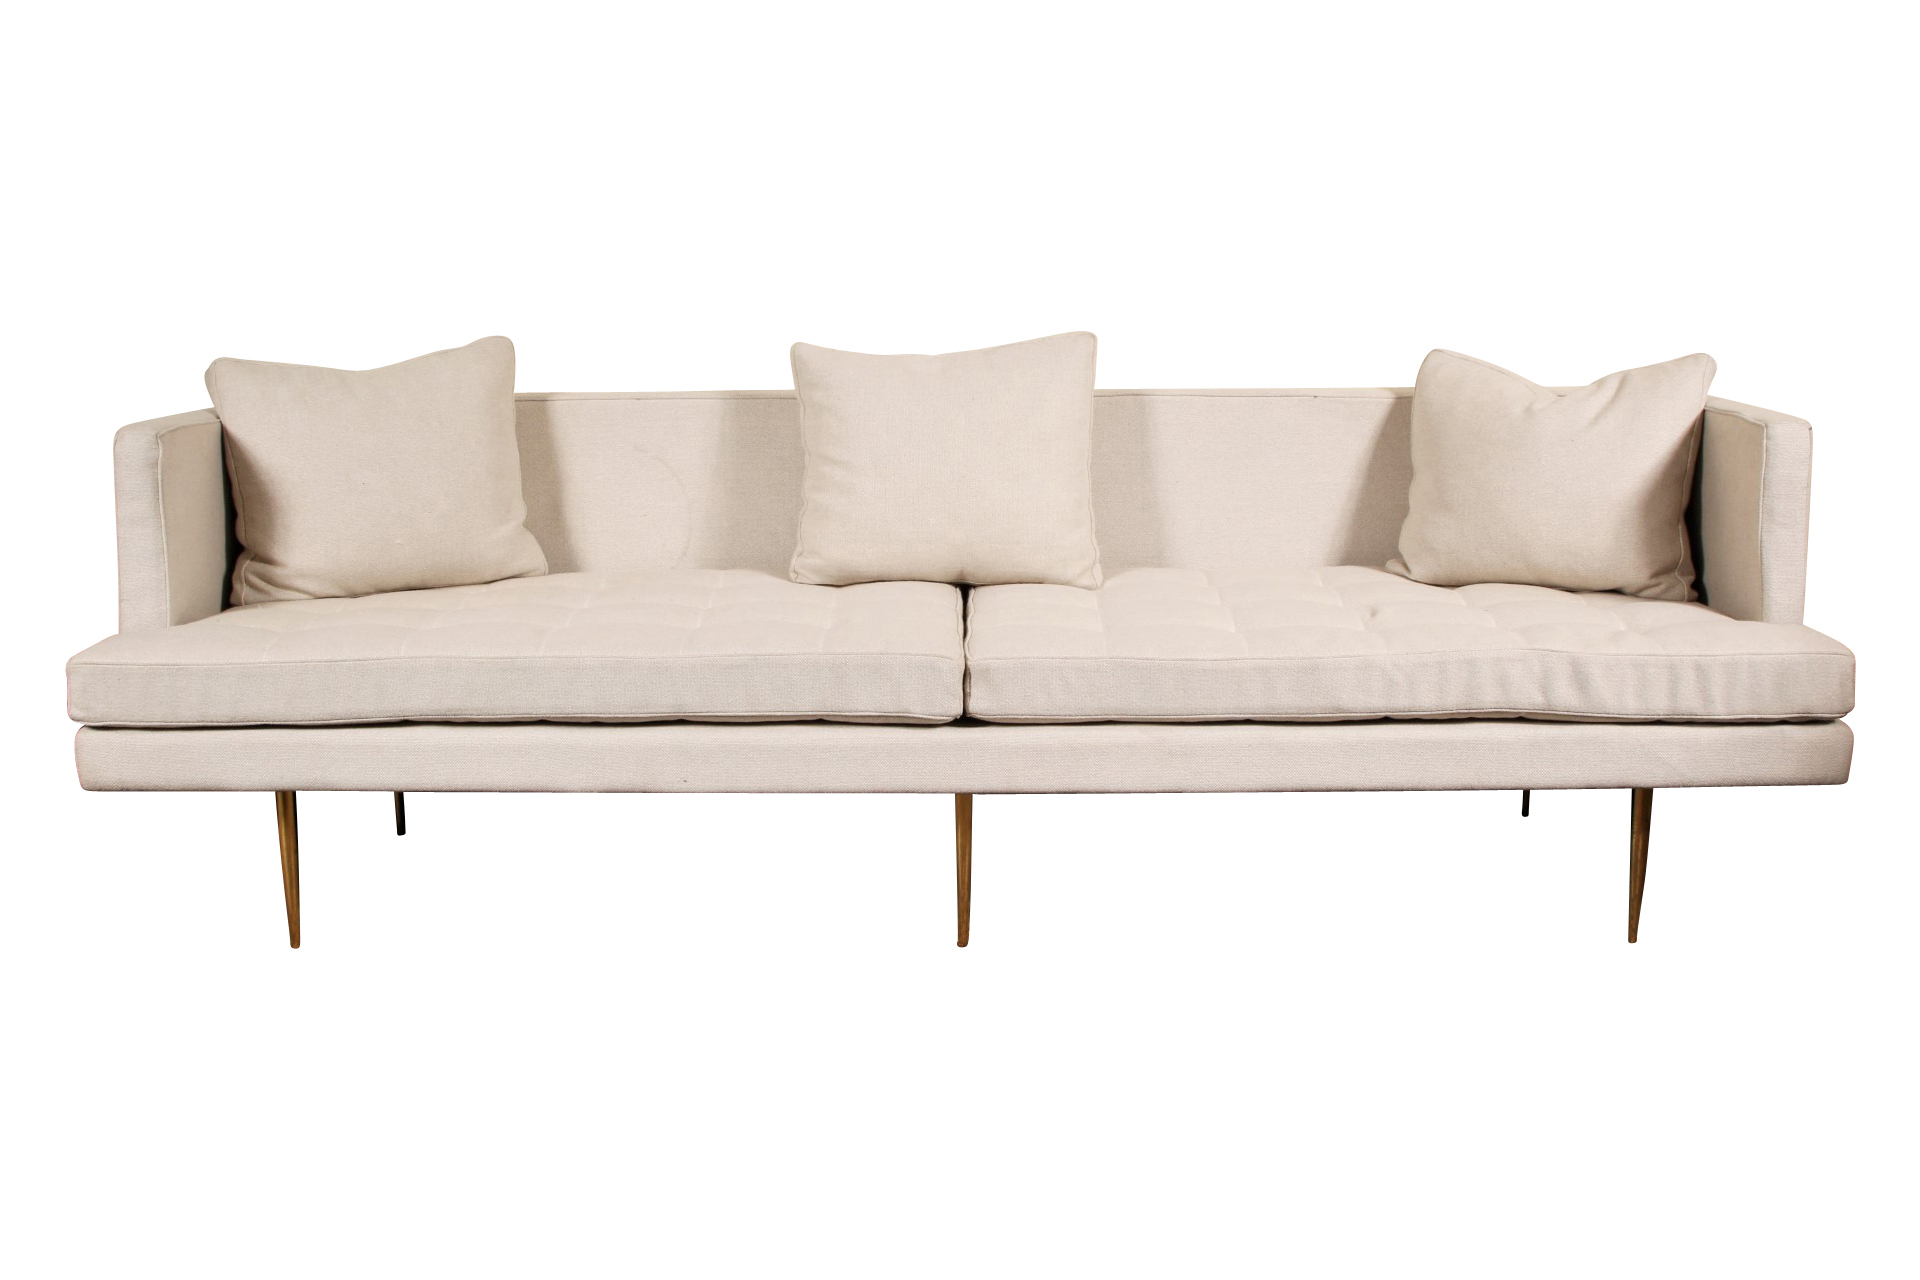 Sofa Legs Tall Modern Upholstered Sofa With Tall Brass Legs Black Rock